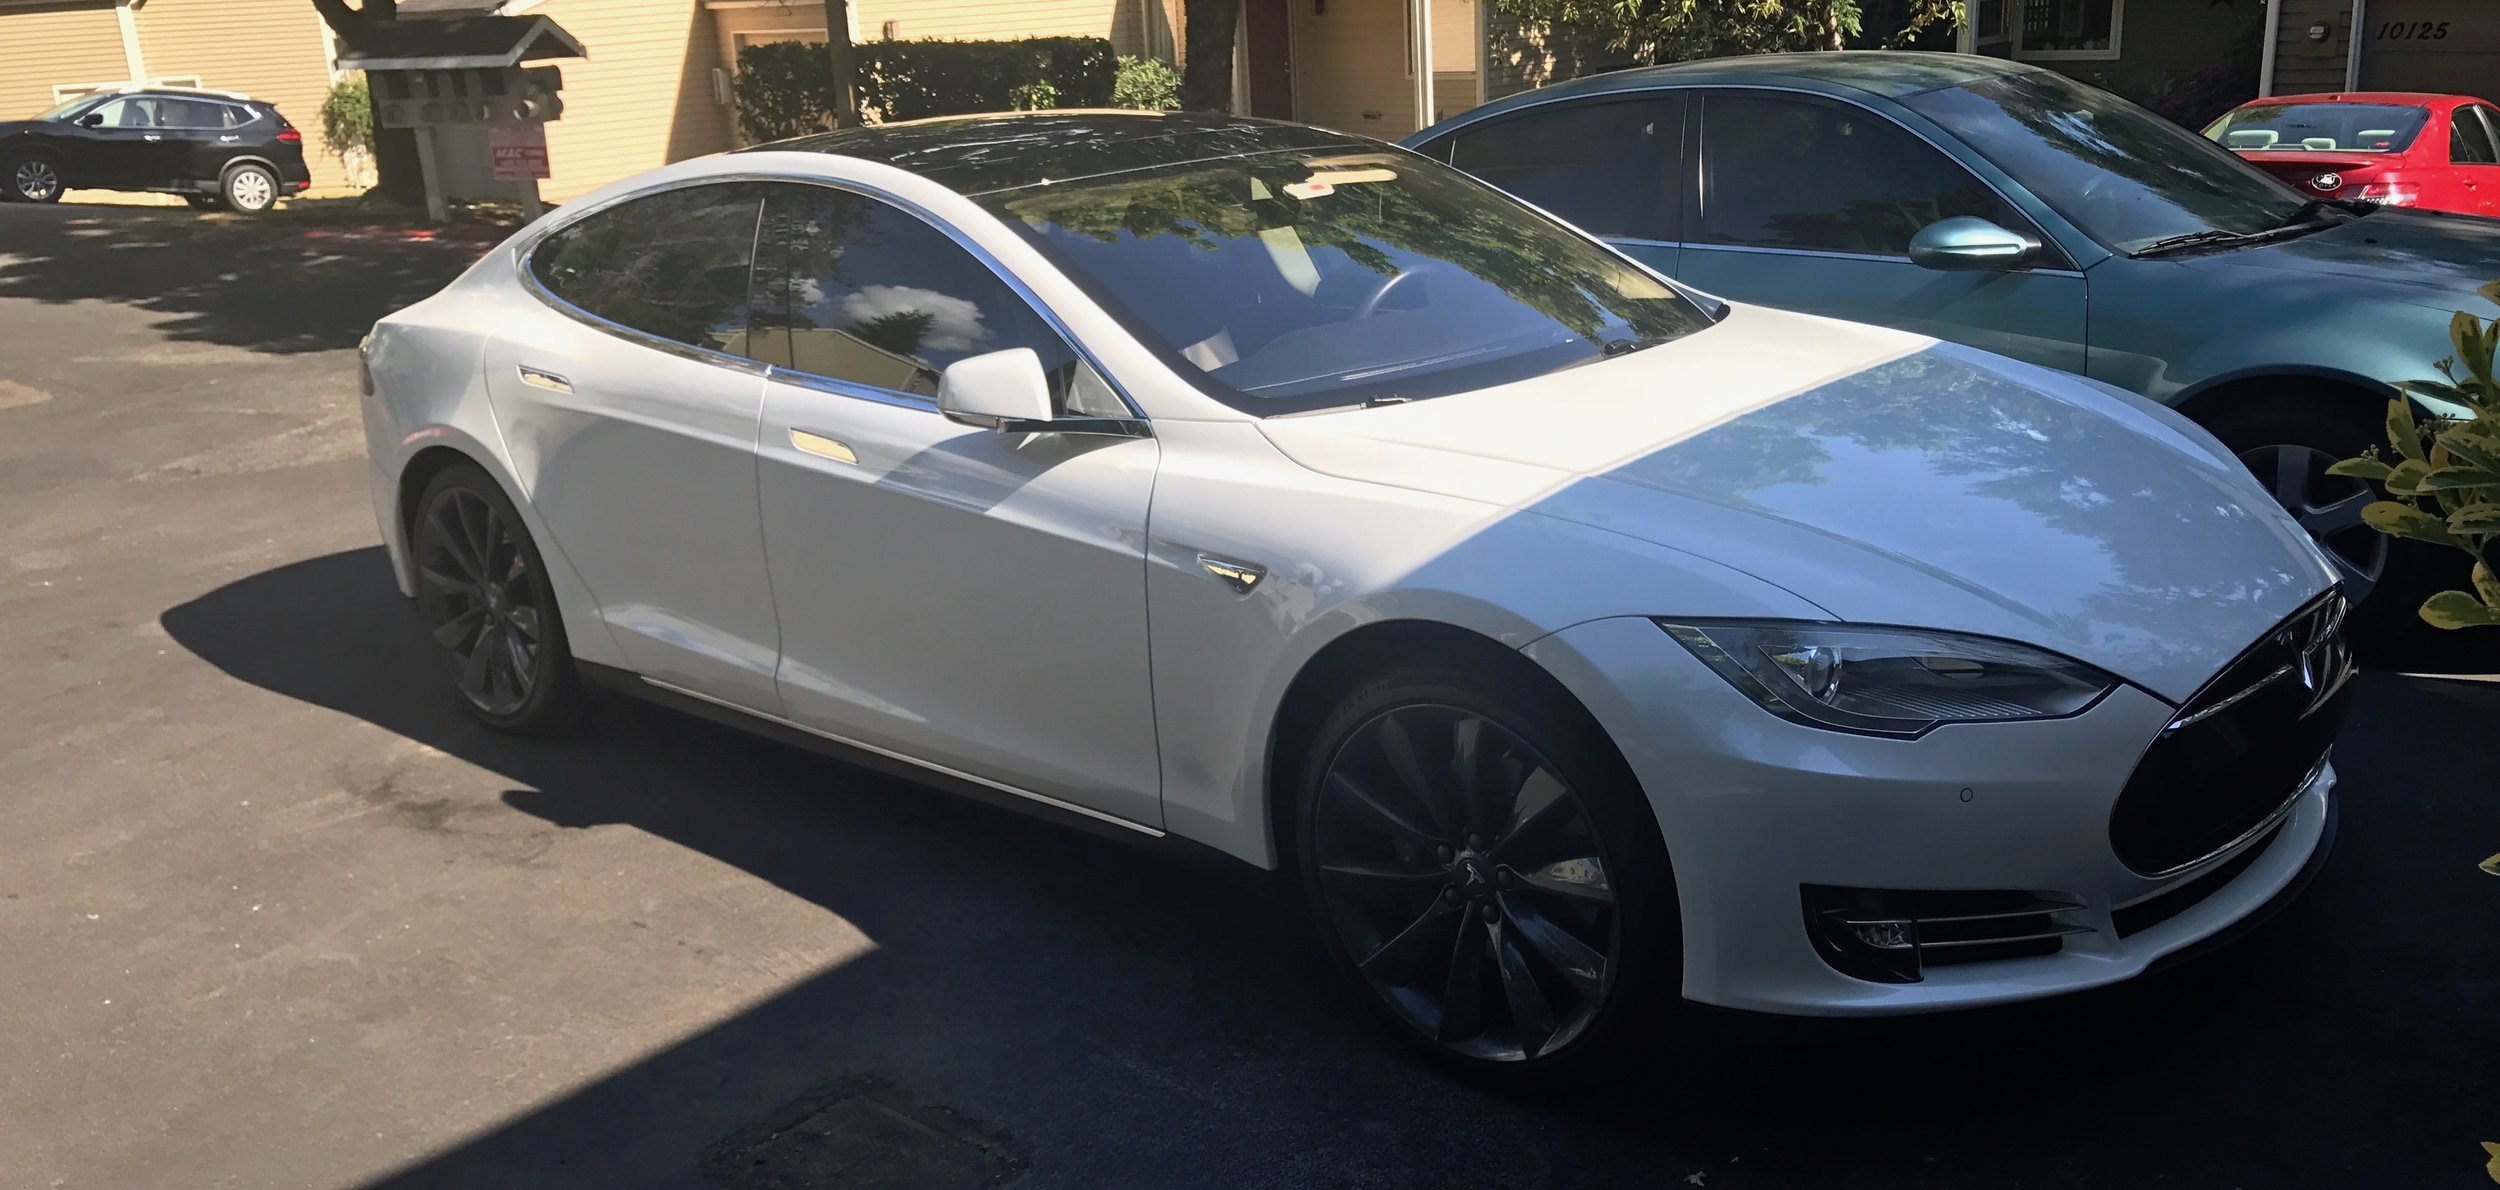 I drove a Tesla for the first time ever; so owning one is now on my bucket list.